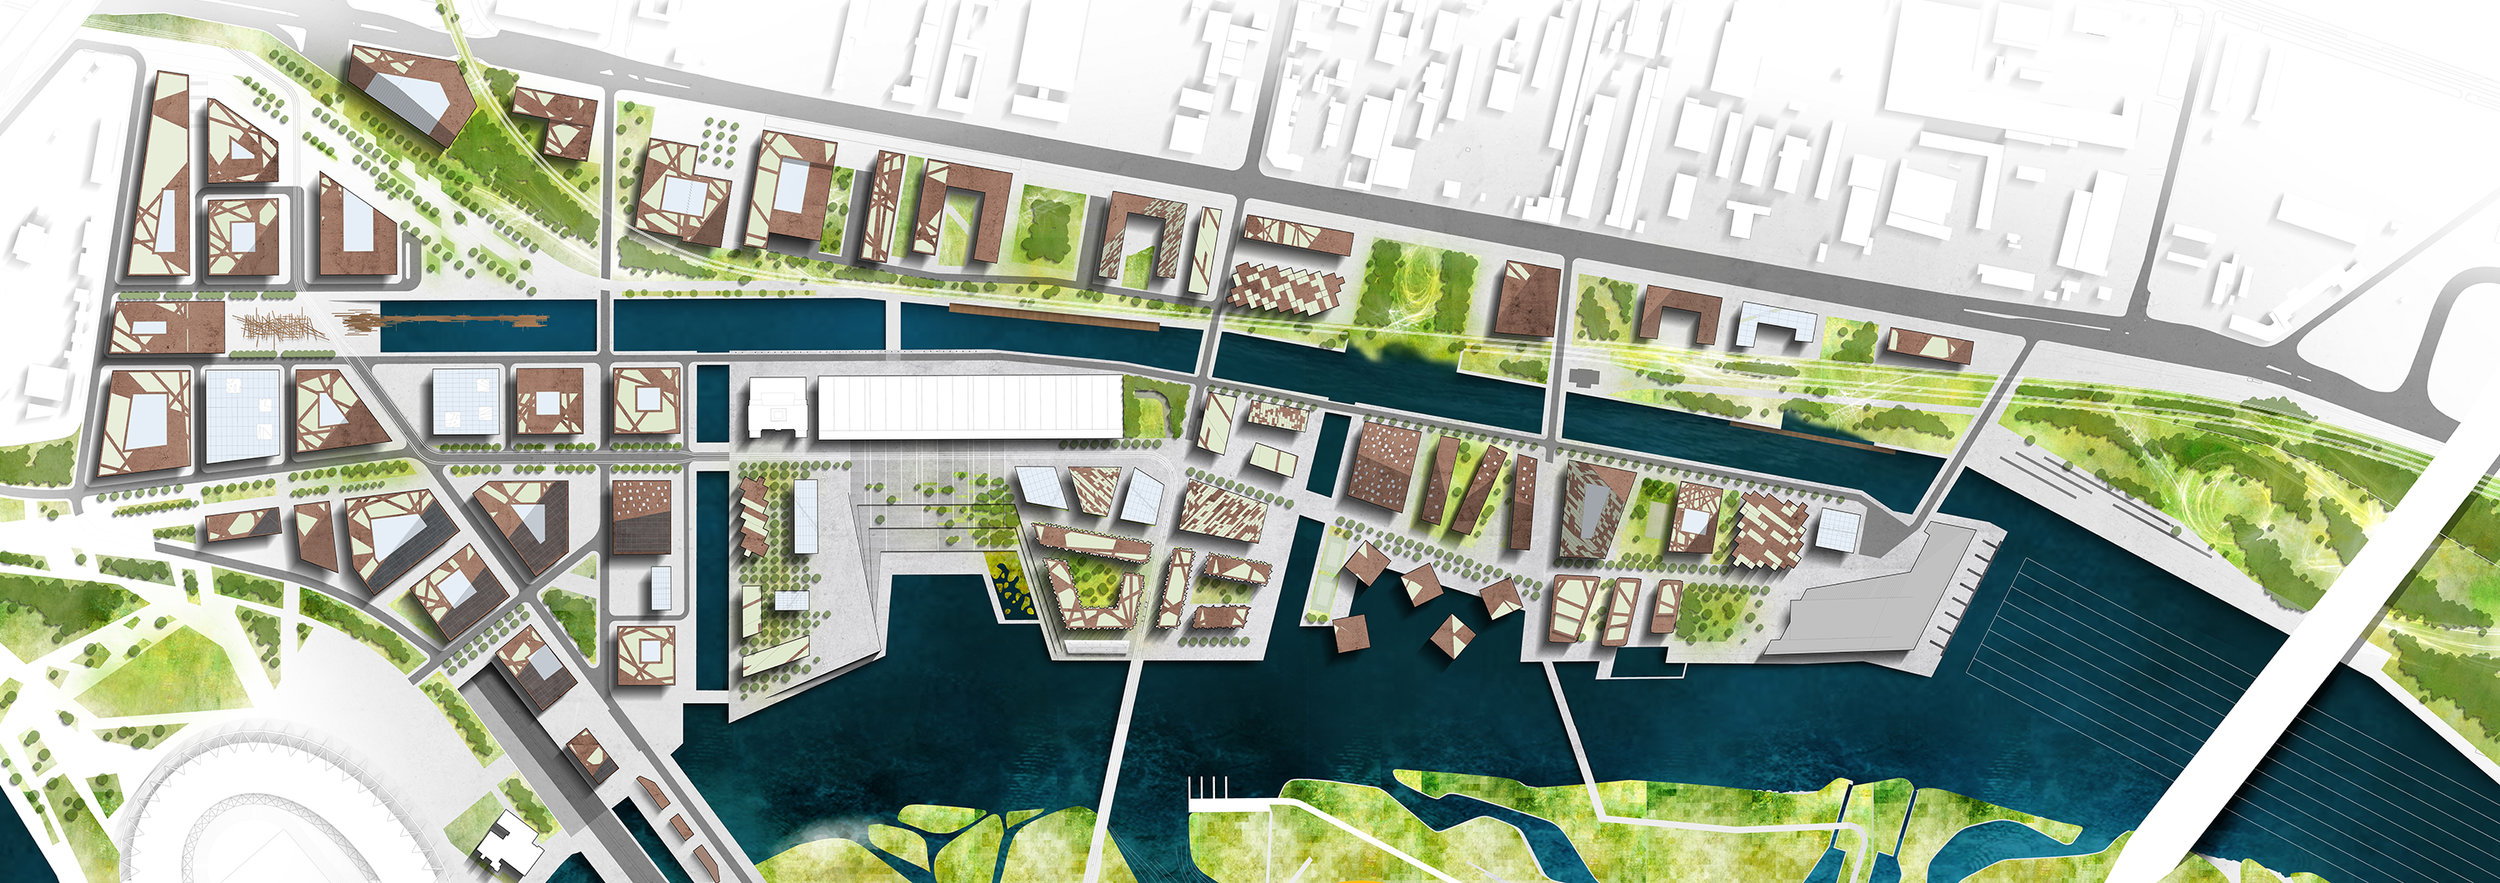 The river banks of the Danube are not currently accessible as they are shaped according to flood control measures so the new design sets about to change that.